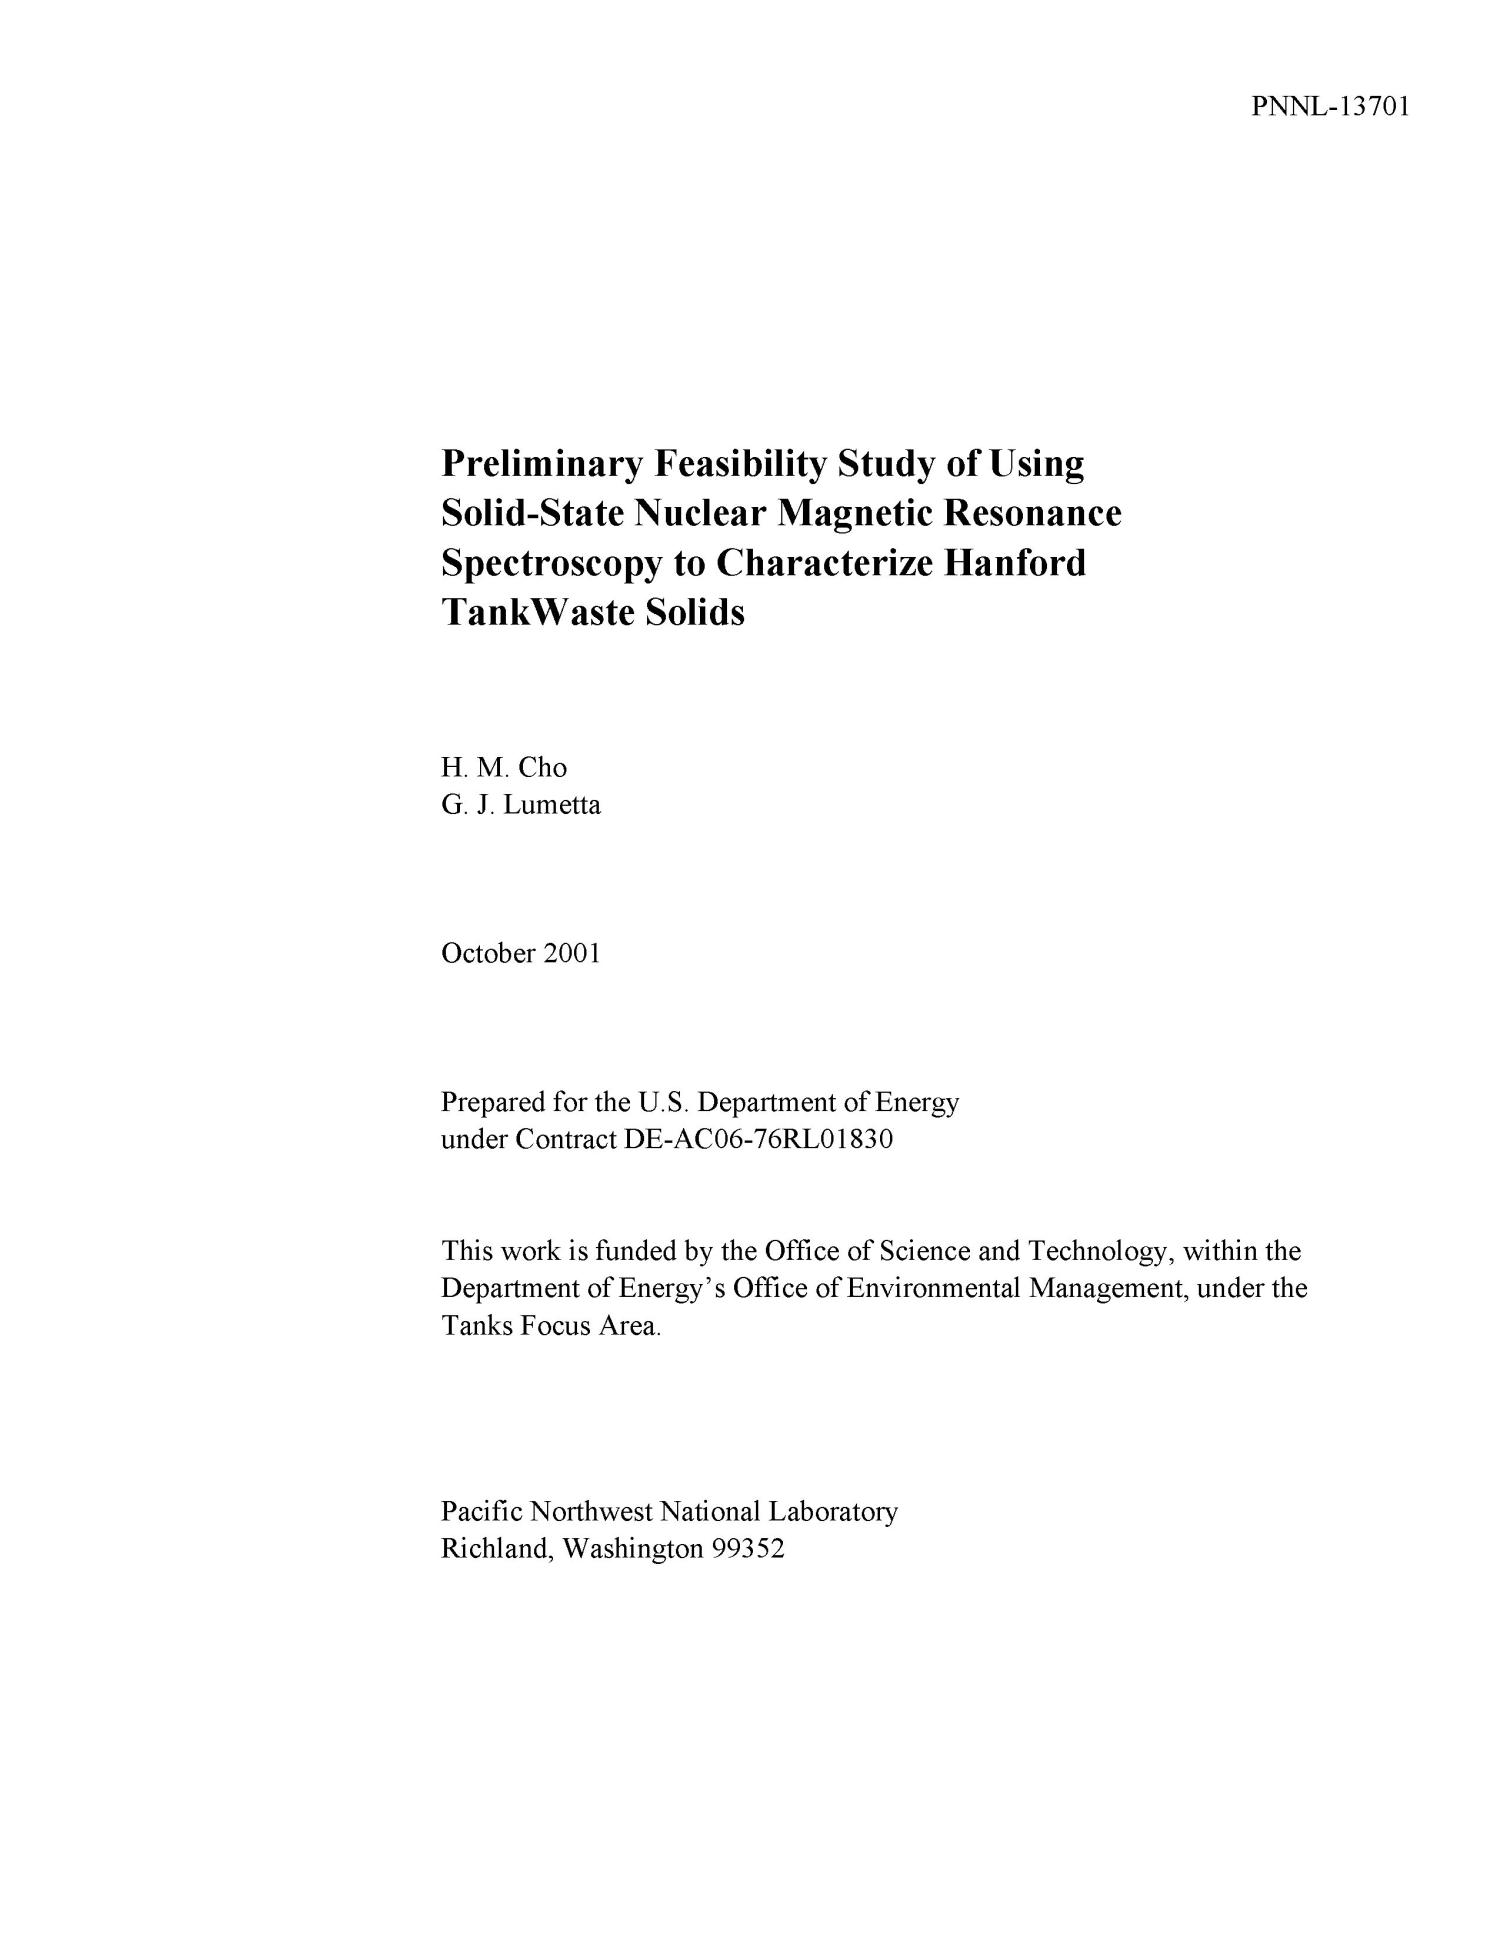 Preliminary Feasibility Study of Using Solid-State Nuclear Magnetic Resonance Spectroscopy to Characterize Hanford Tank Waste Solids                                                                                                      [Sequence #]: 3 of 28